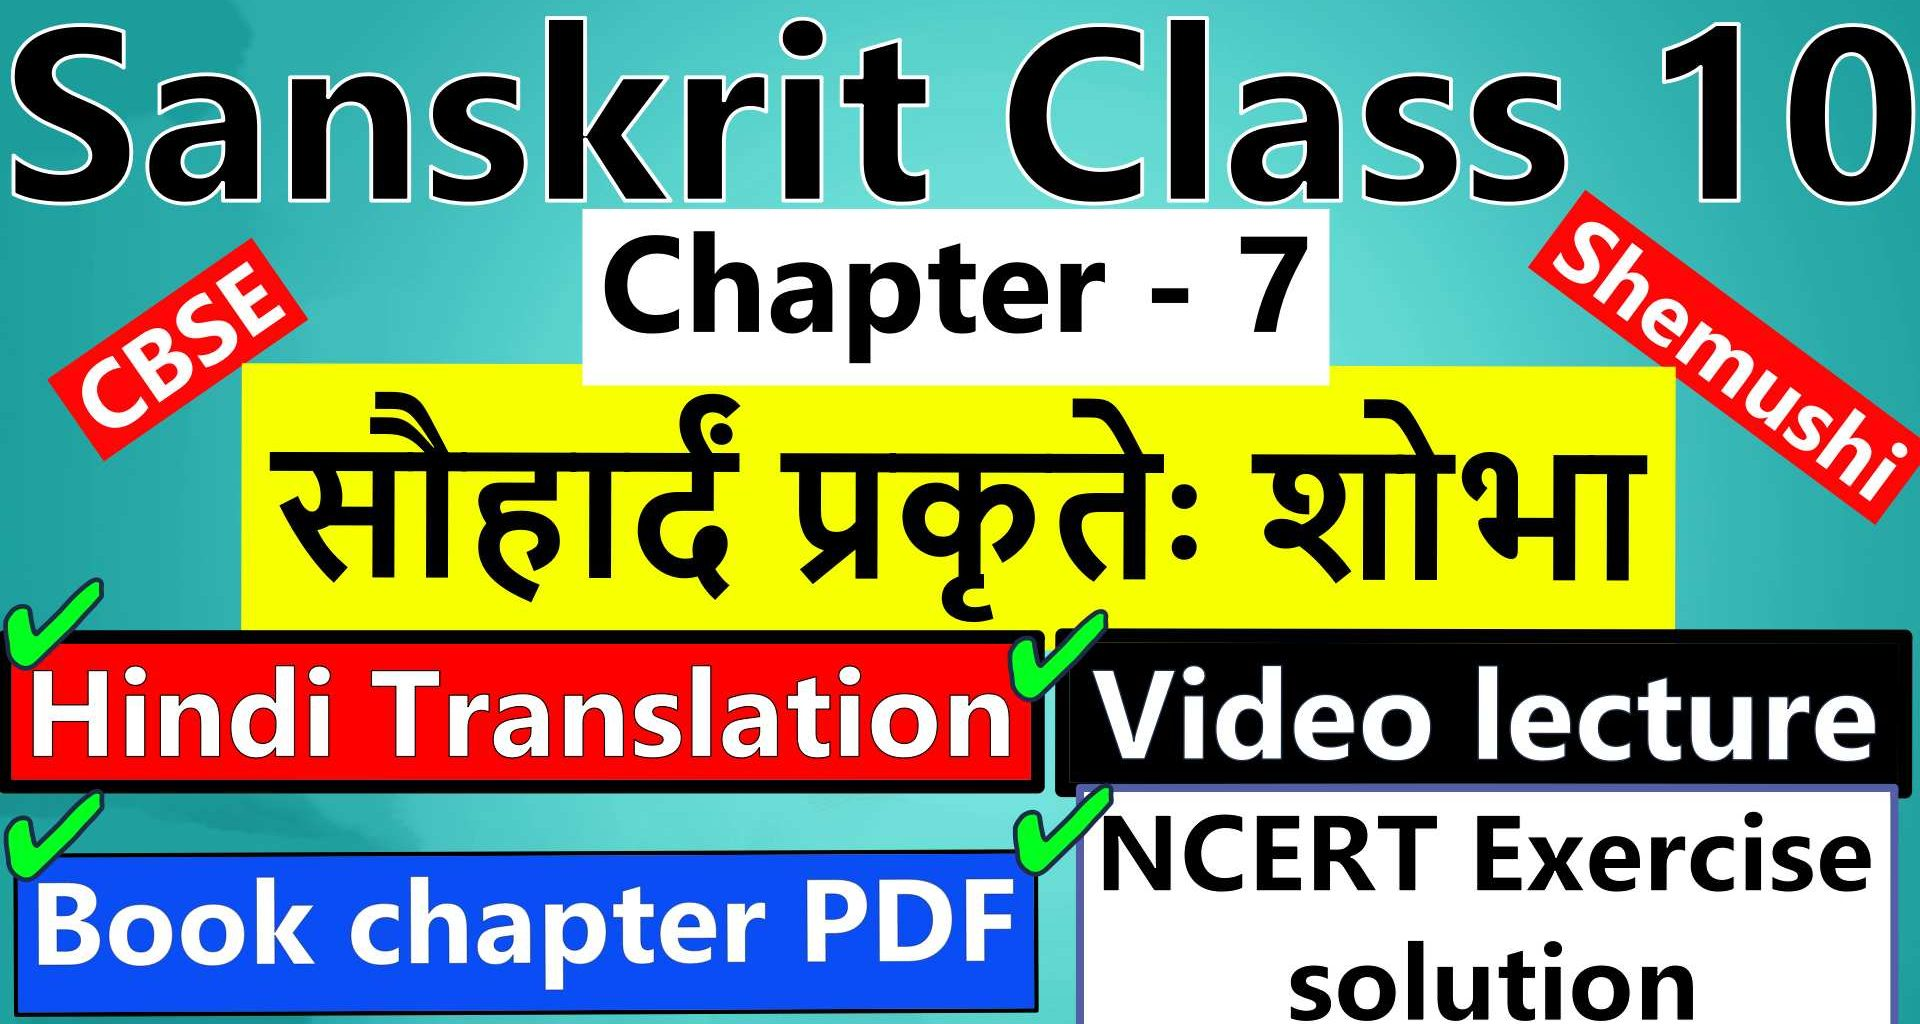 sanskrit-class-10-chapter-7-सौहार्दं-प्रकृतेः-शोभा-Hindi-Translation-Video-lecture-NCERT-Exercise-Solution-Question-Answer-Book-chapter-PDF